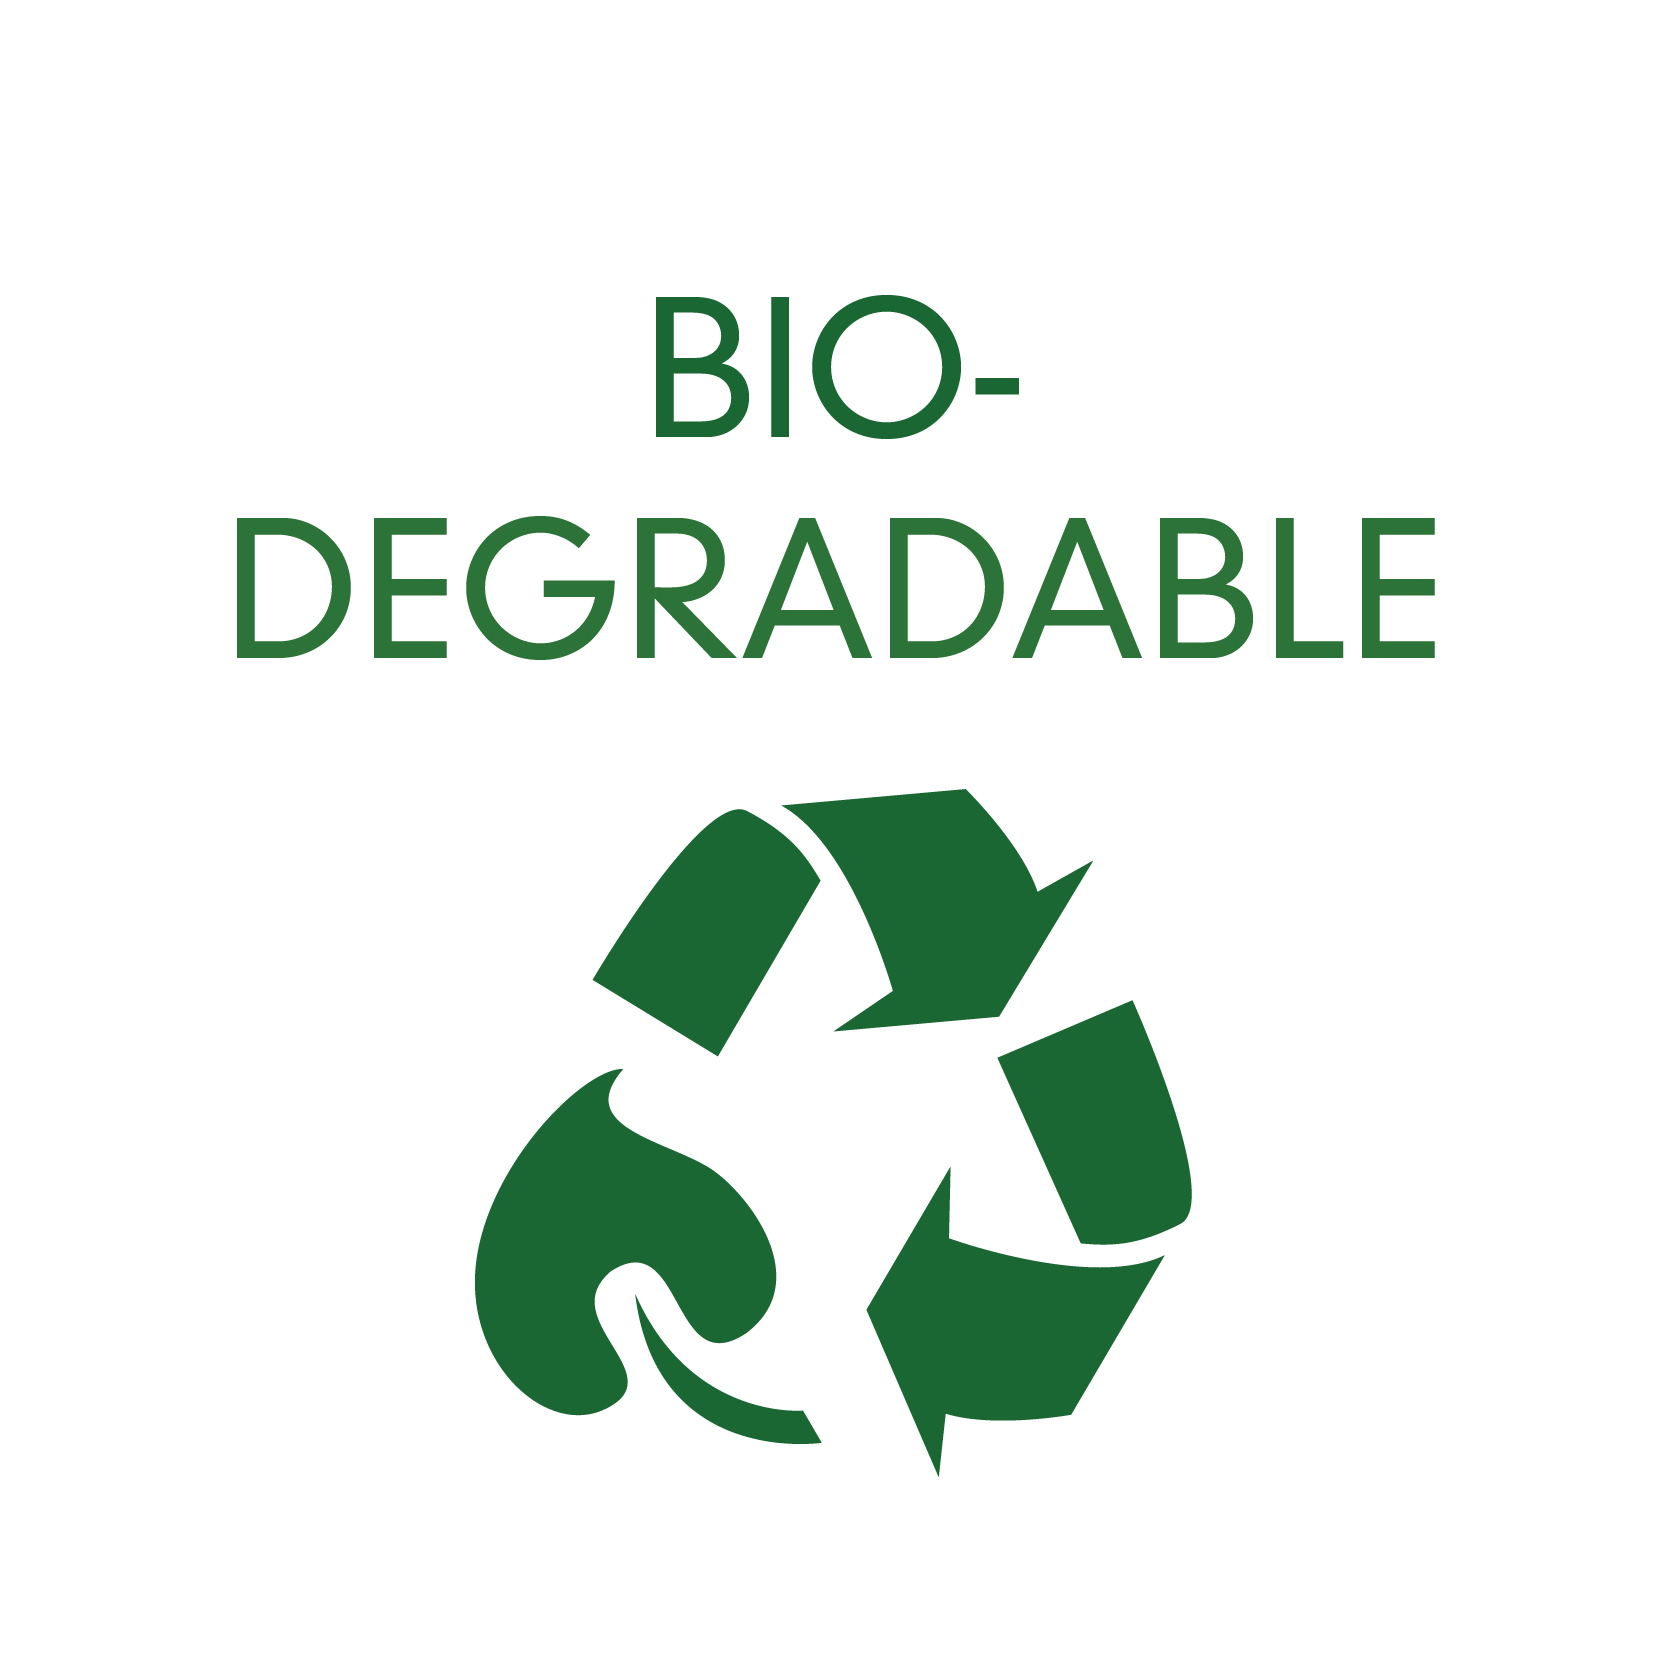 Bio Degradable